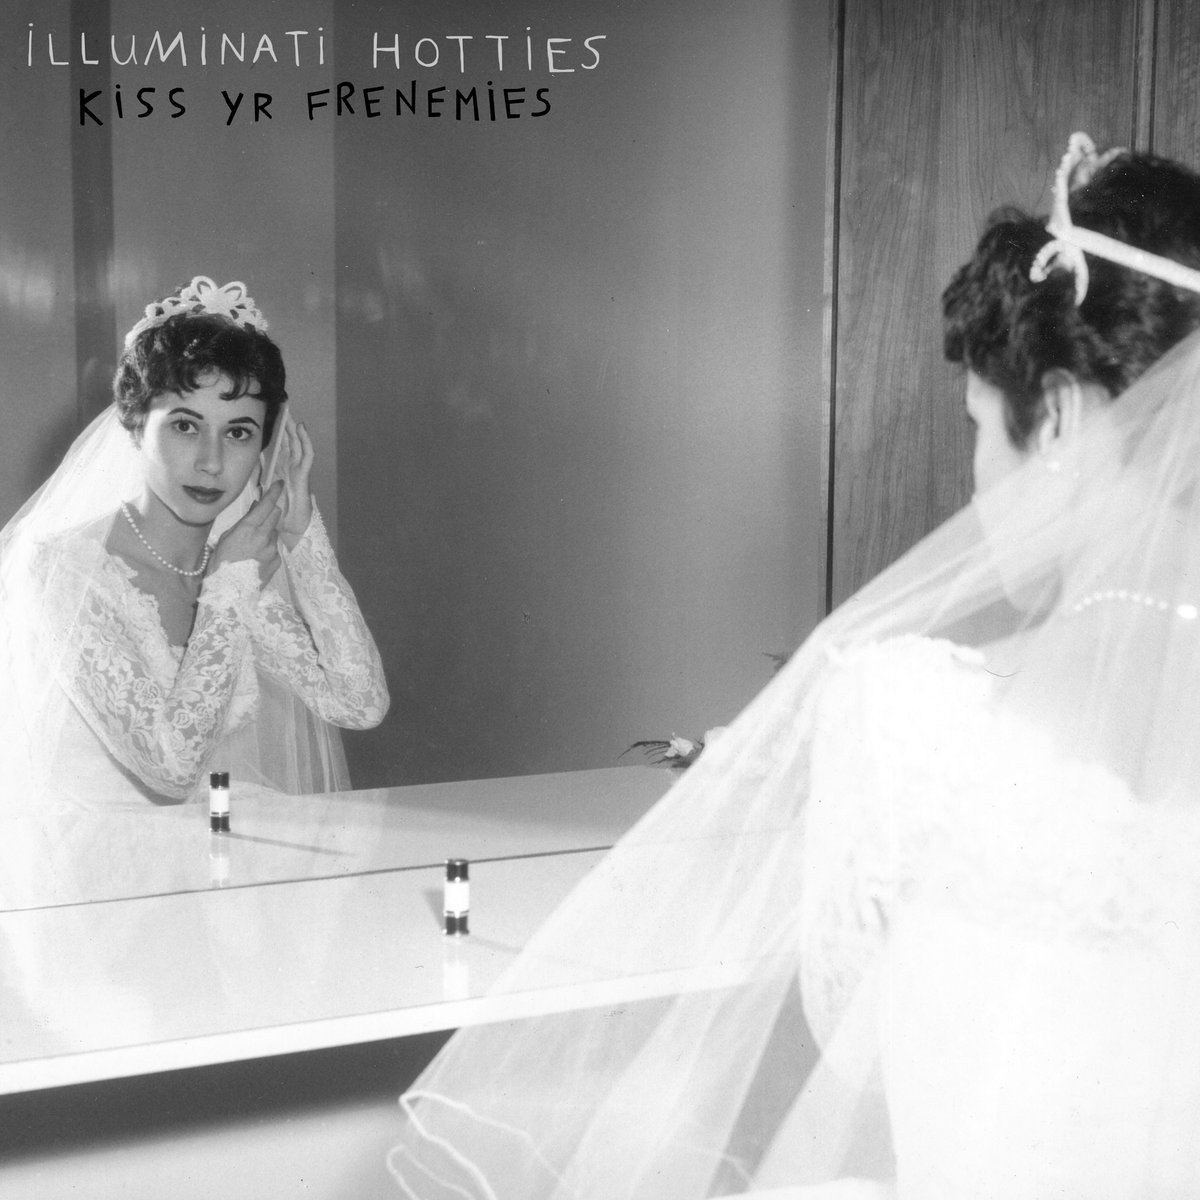 Illuminati Hotties - Kiss Yr Frenemies LP